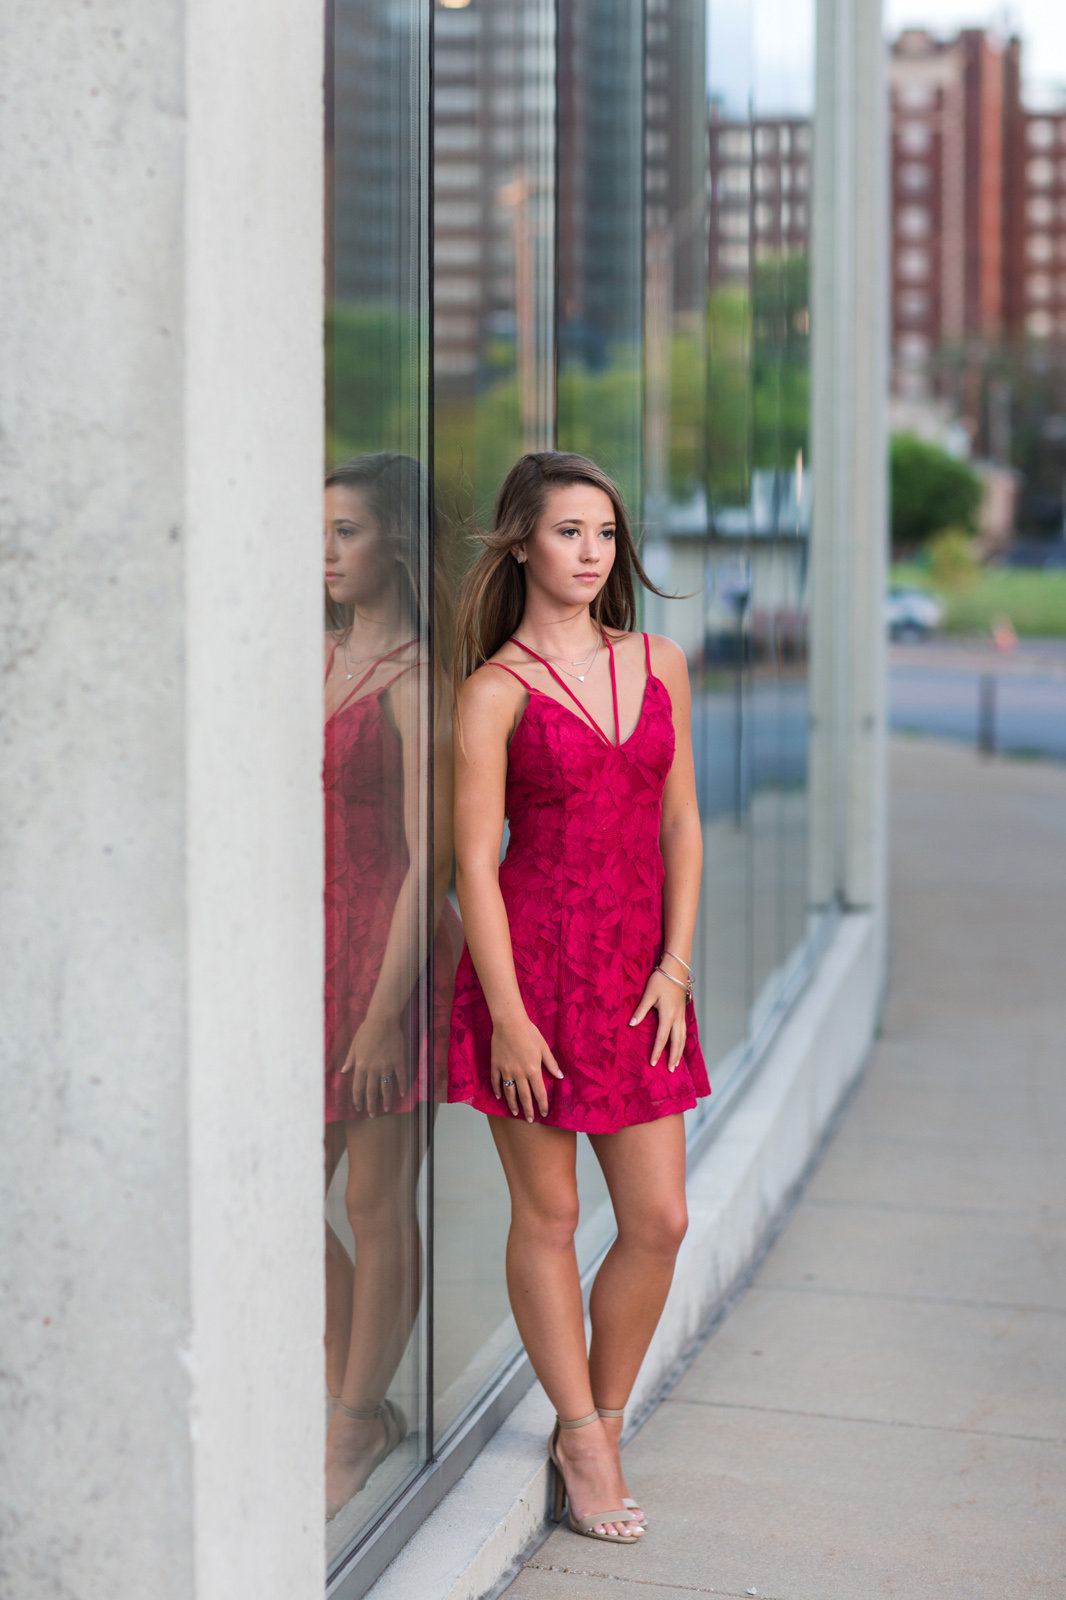 L Photographie high school senior photos midtown St. Louis 72